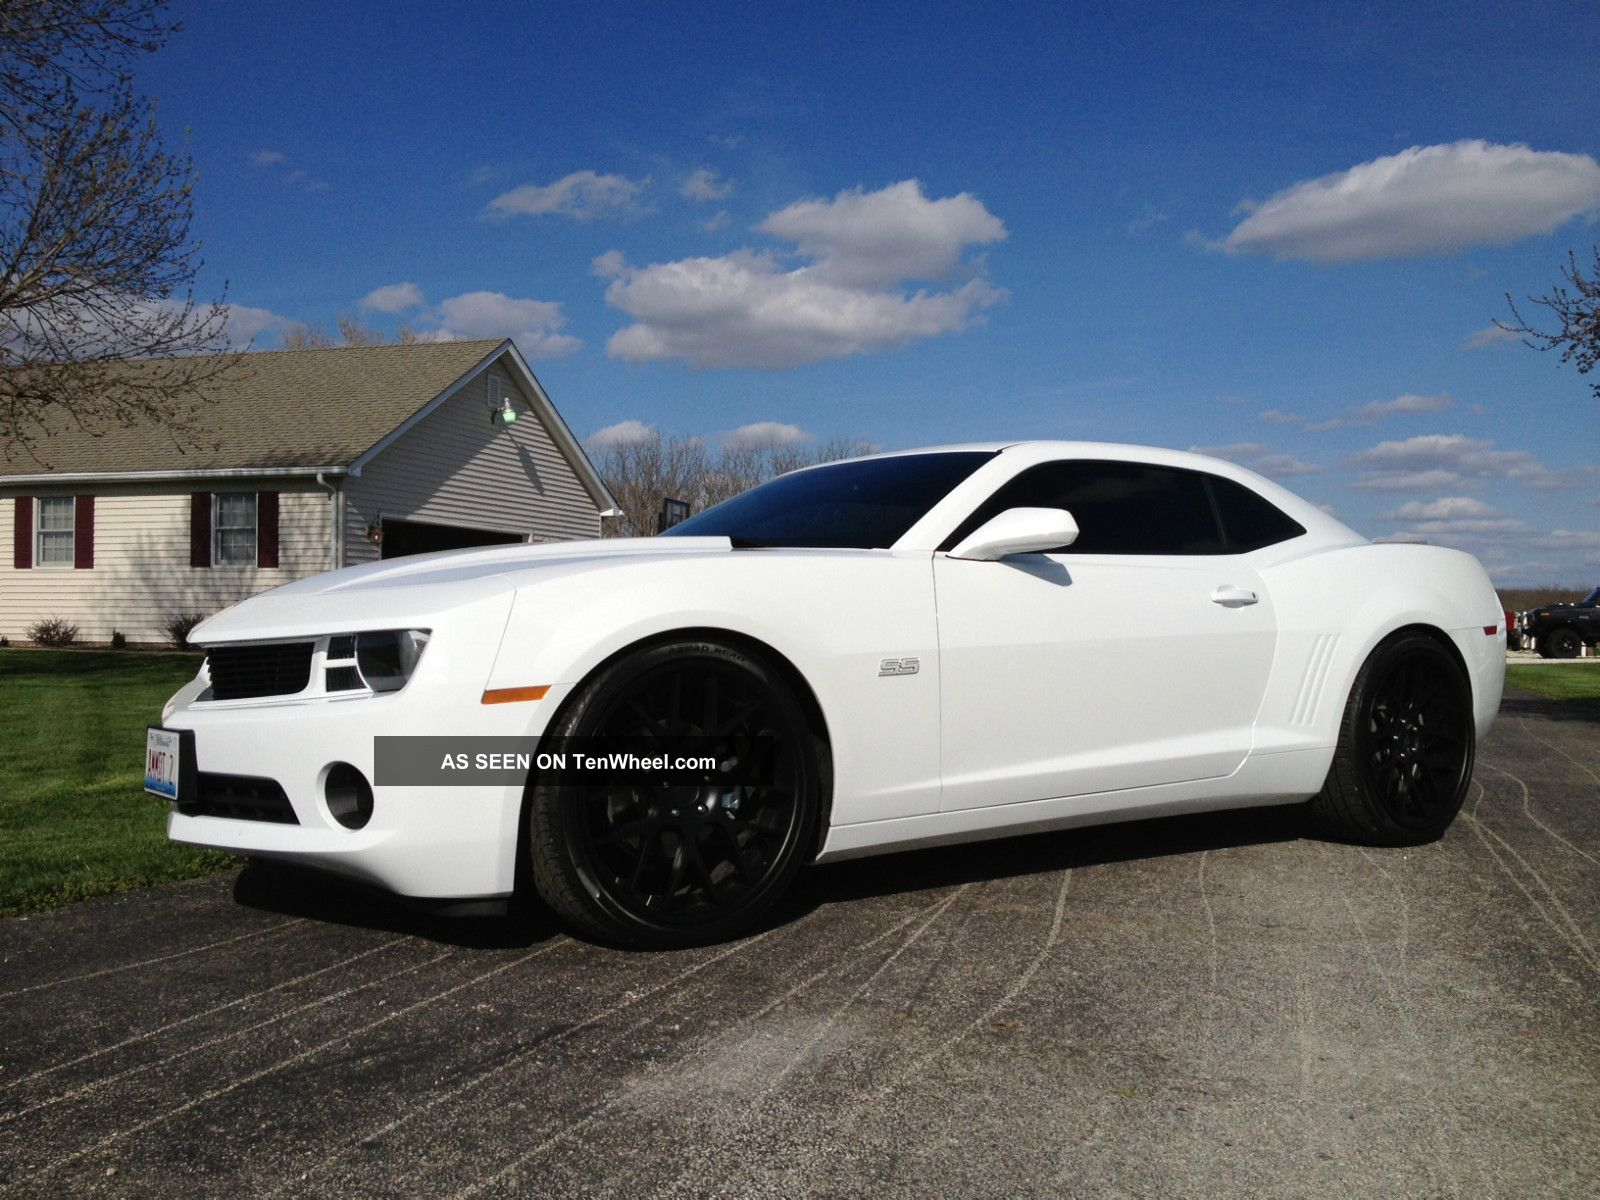 2013 White Camaro V6 Lowered Custom 3 Piece Wheels Custom Car Camaro photo